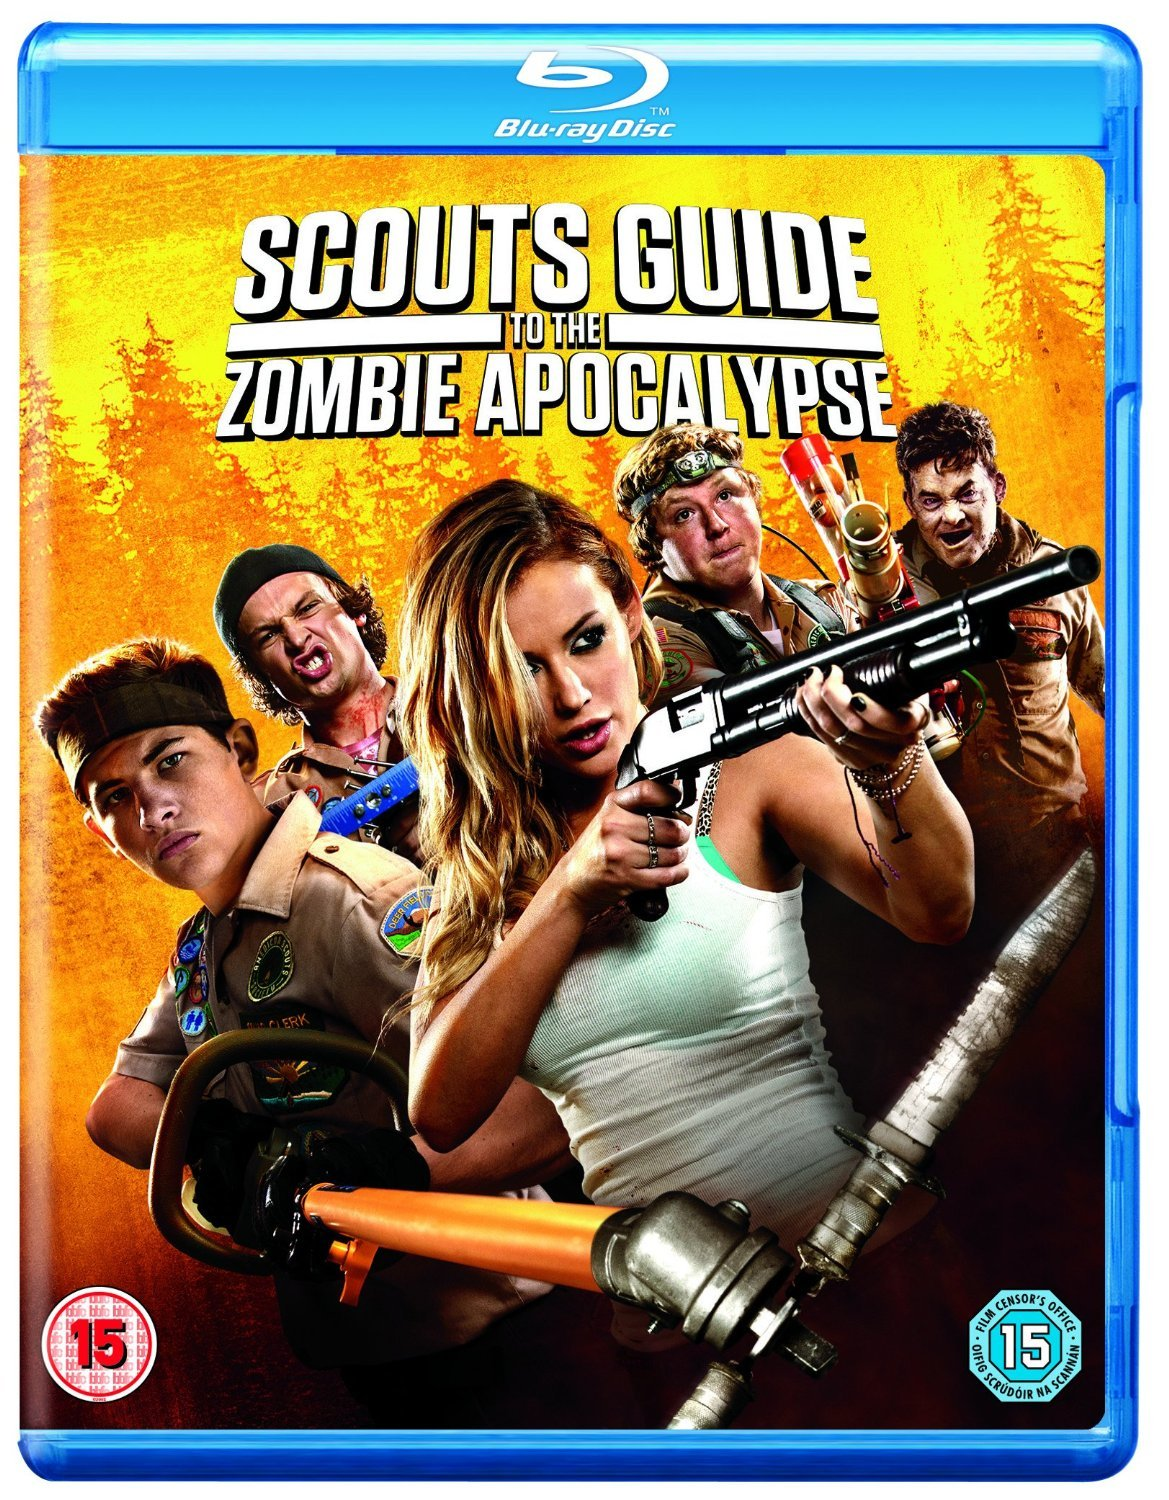 Scouts Guide To The Limited time Max 53% OFF sale Blu-ray Zombie Apocalypse